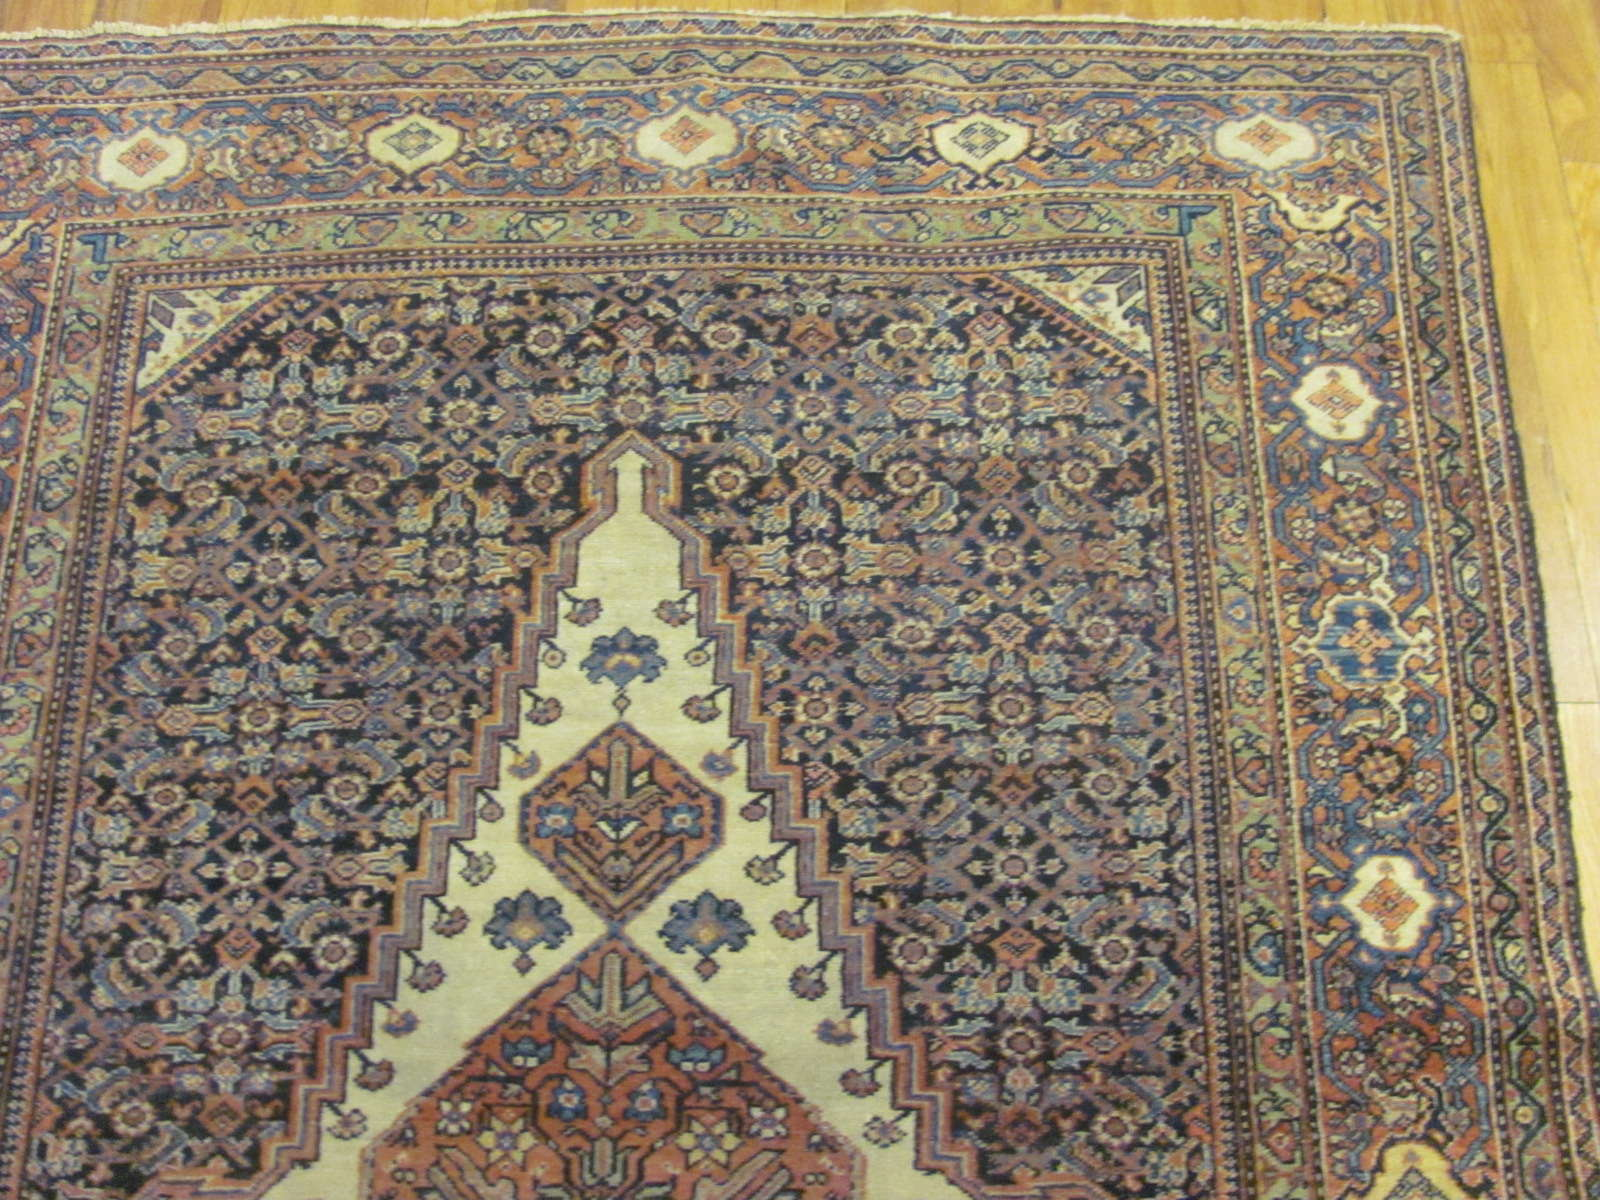 24823 antique persian fereghan rug 4,3 x 6,4 (2)